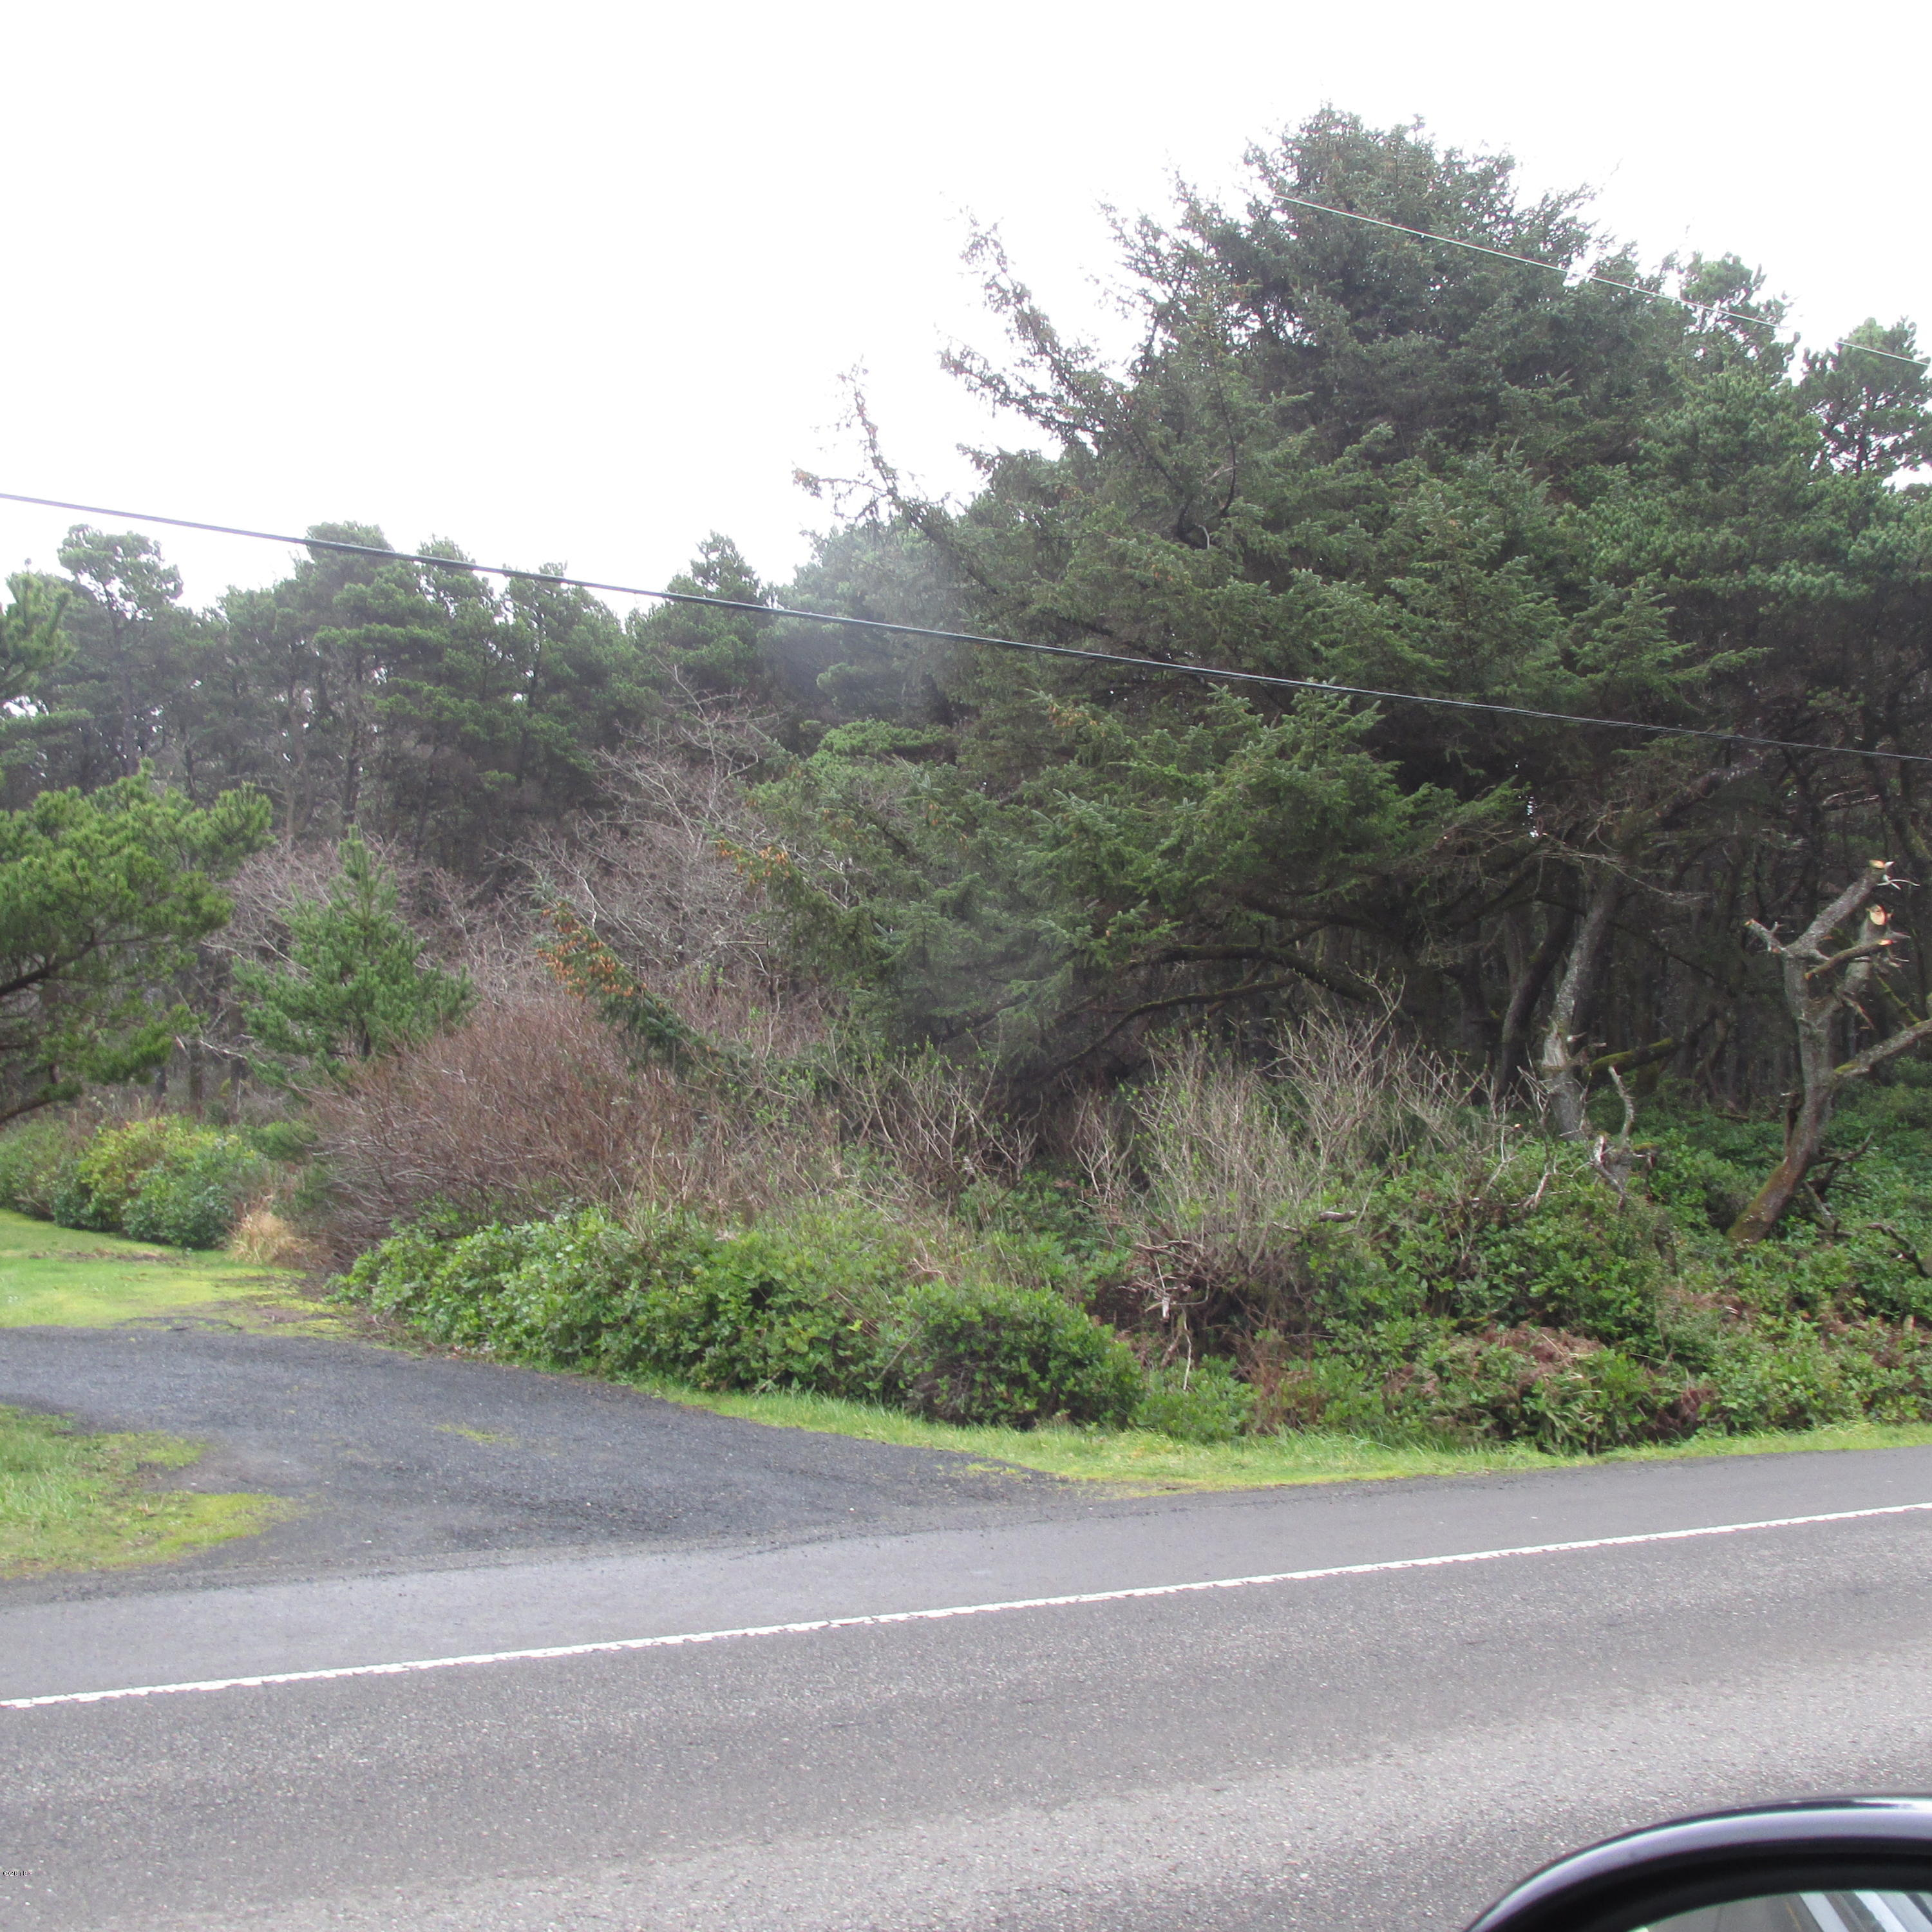 TL 1400 Highway 101 N, Yachats, OR 97498 - Lund 1.46 acre parcel